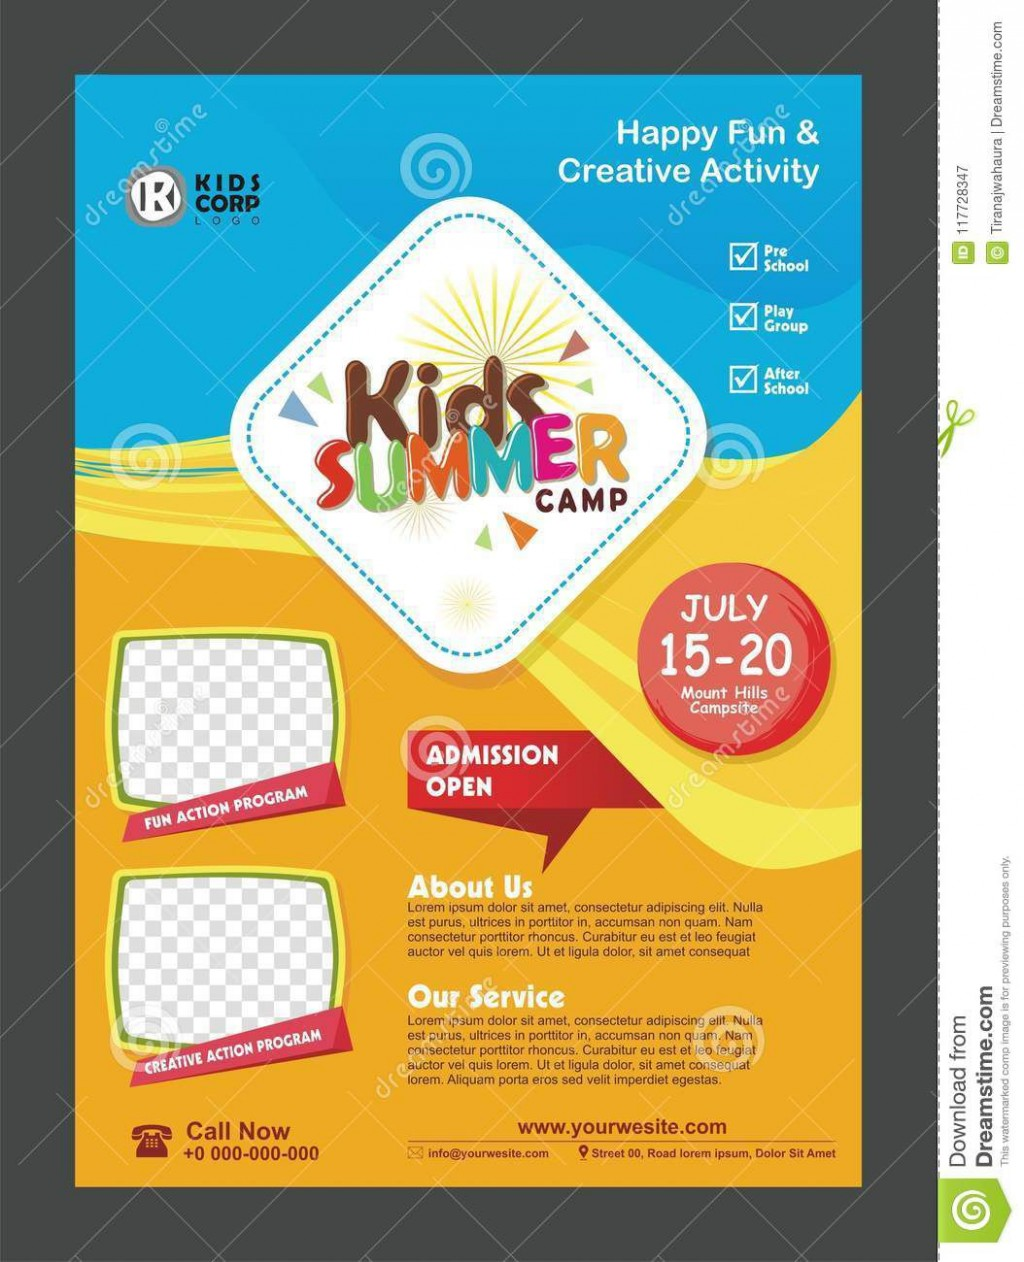 008 Fascinating Free After School Program Flyer Template Picture Large